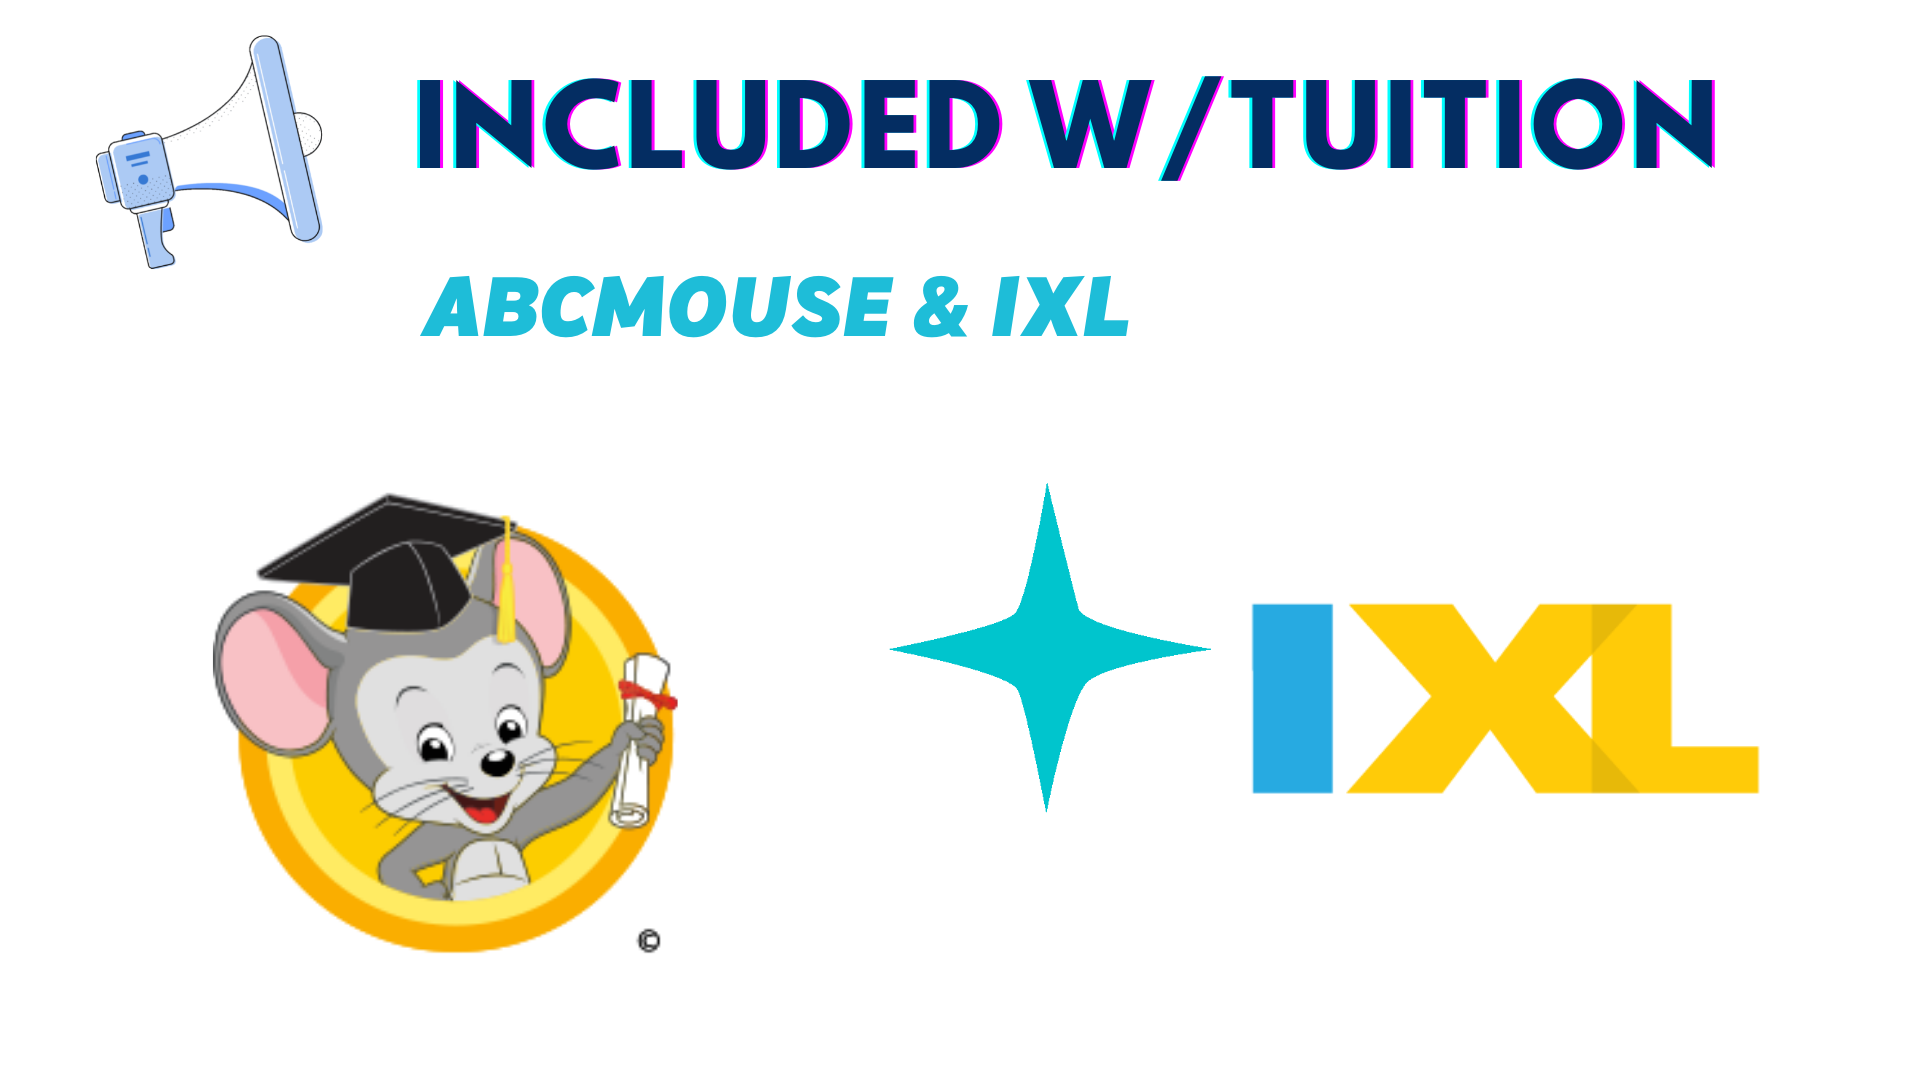 BRRA Tuition Includes Abcmouse and IXL